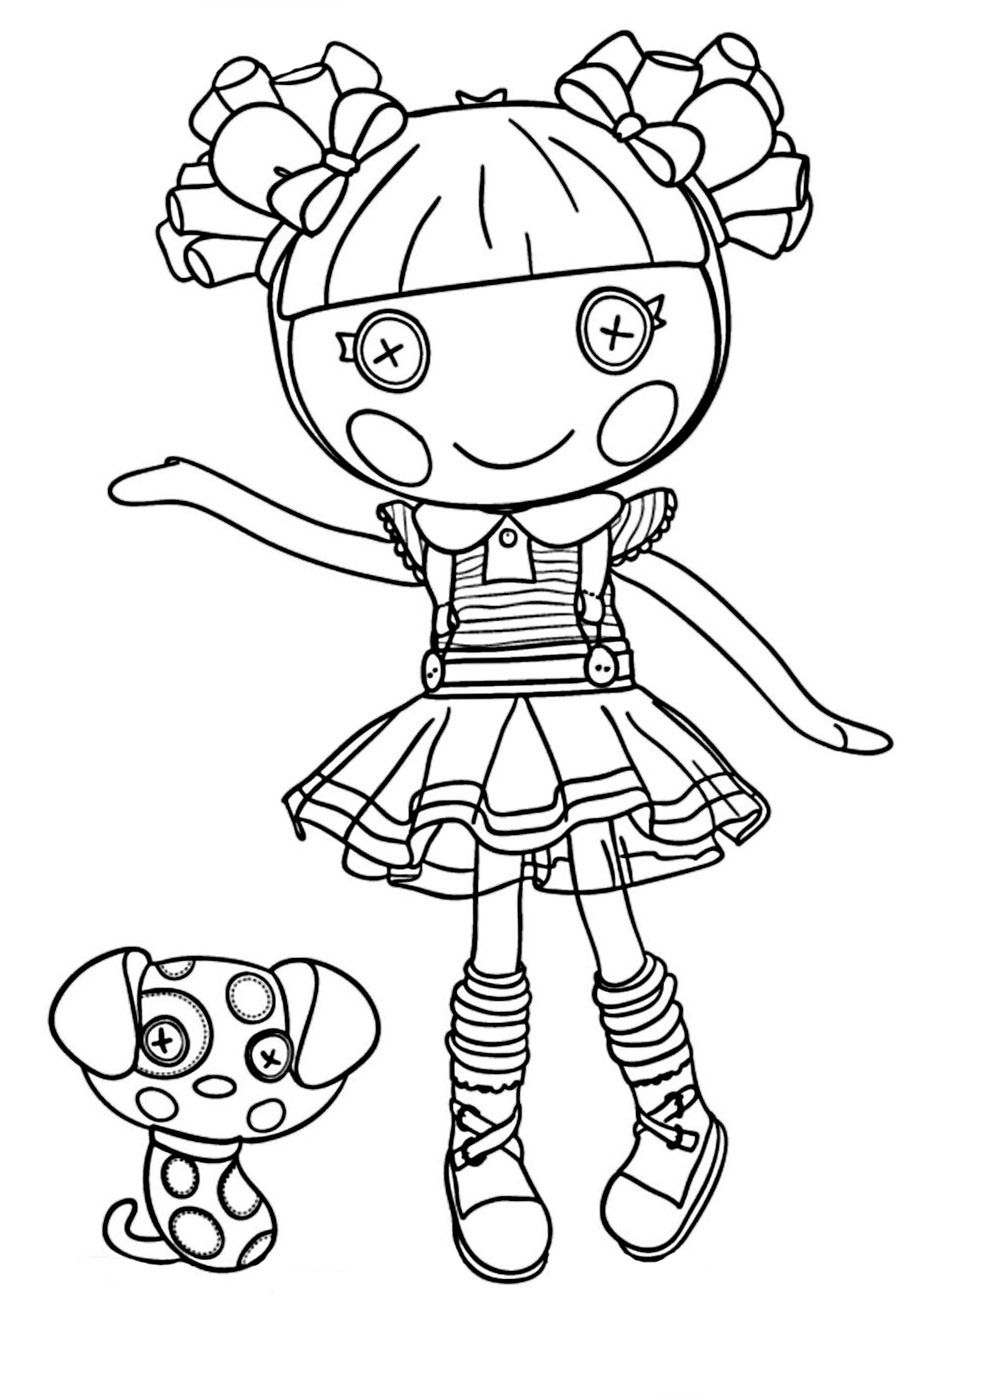 Lalaloopsy coloring | Coloring Pages in 2018 | Pinterest ...